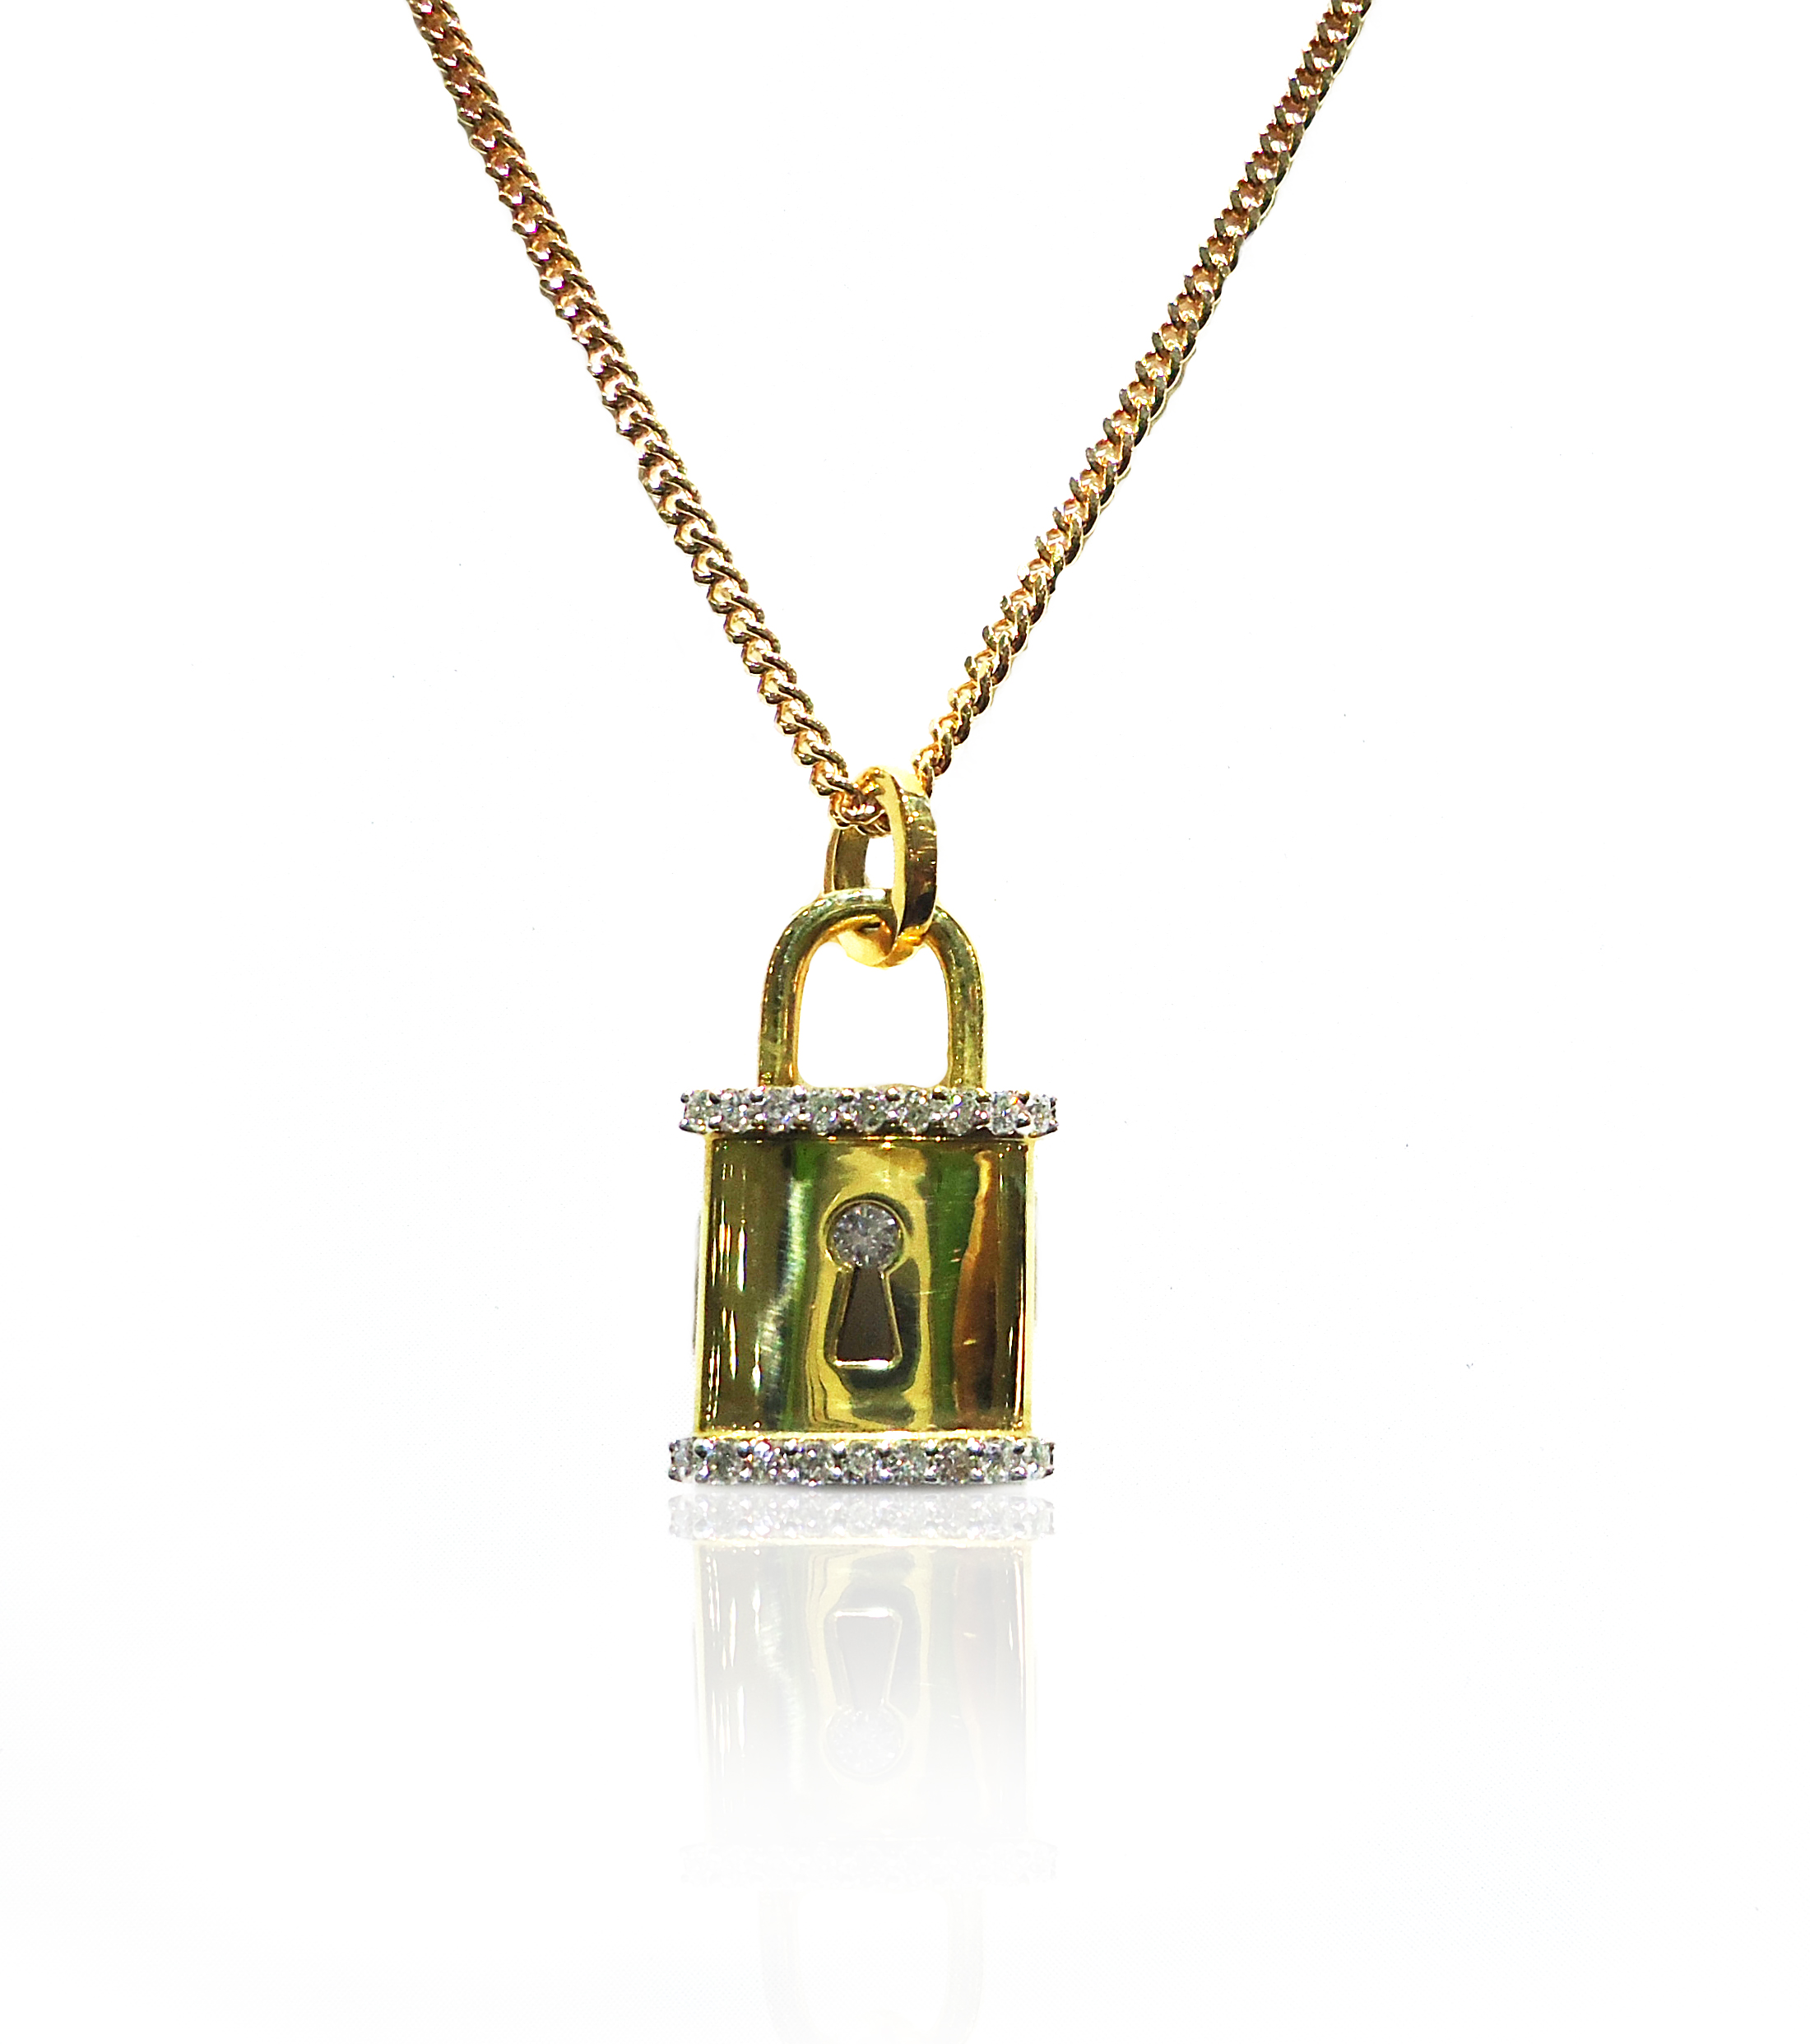 Gold Lock pendant!